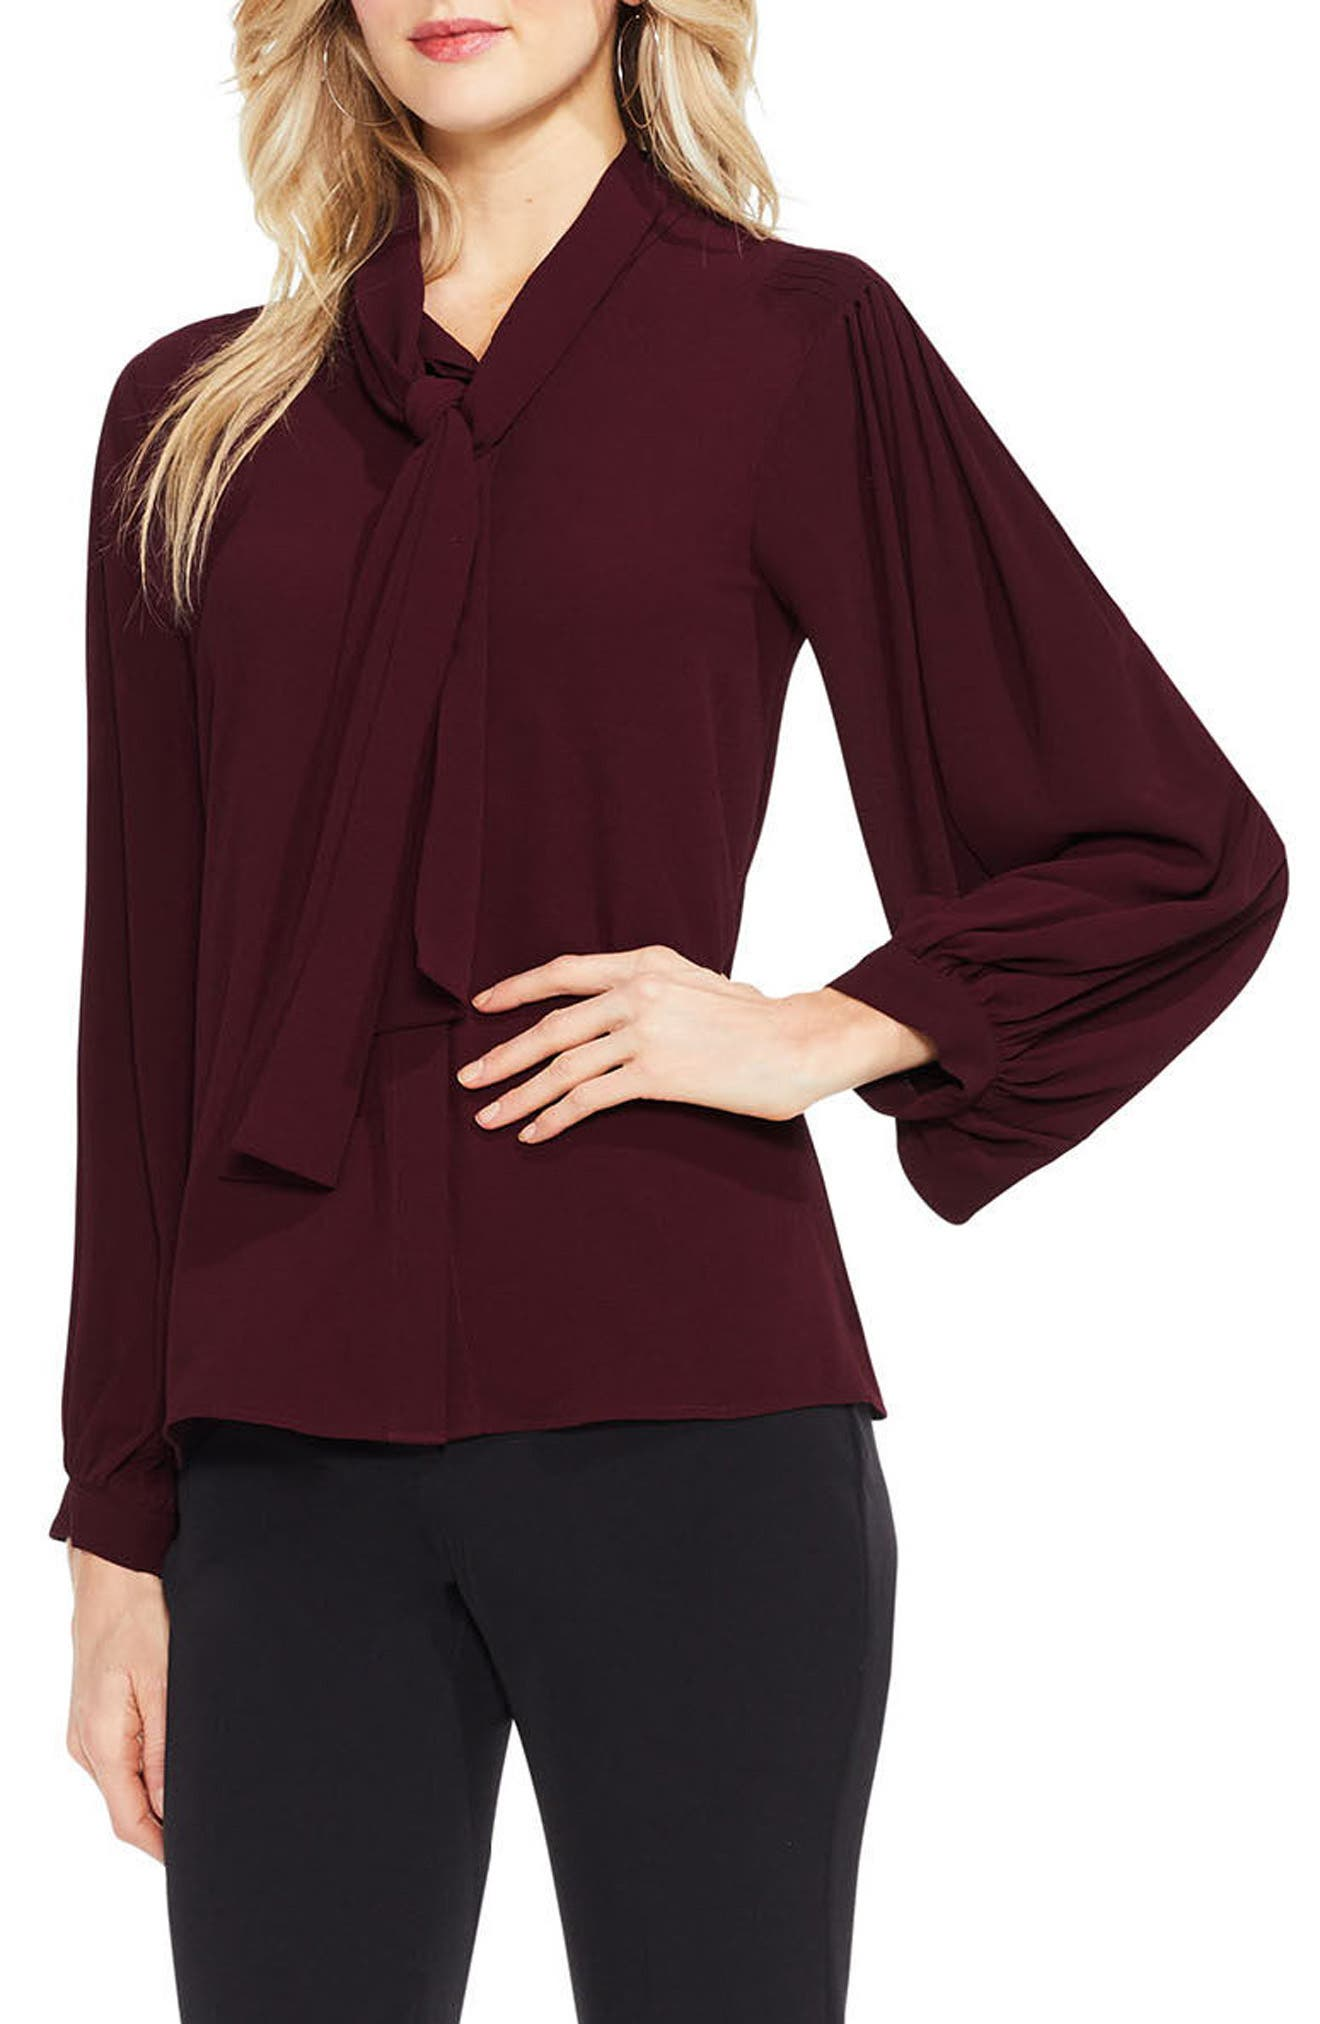 Main Image - Vince Camuto Long Sleeve Tie-Neck Blouse